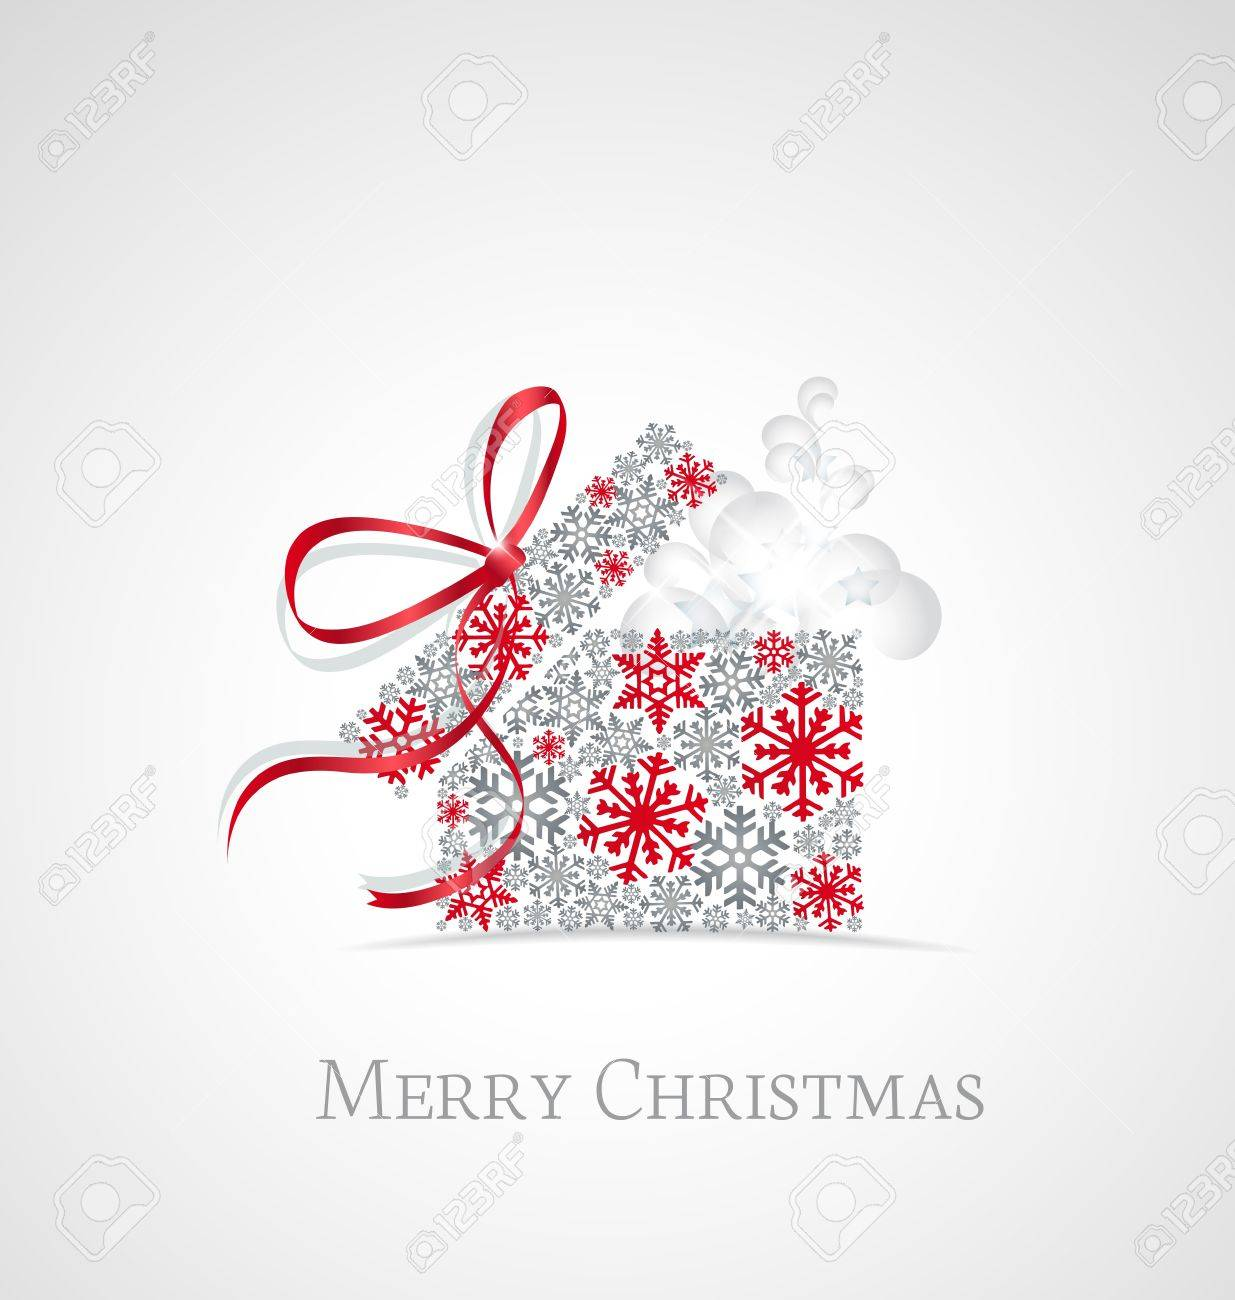 Christmas present box on snowy background Stock Vector - 15935745